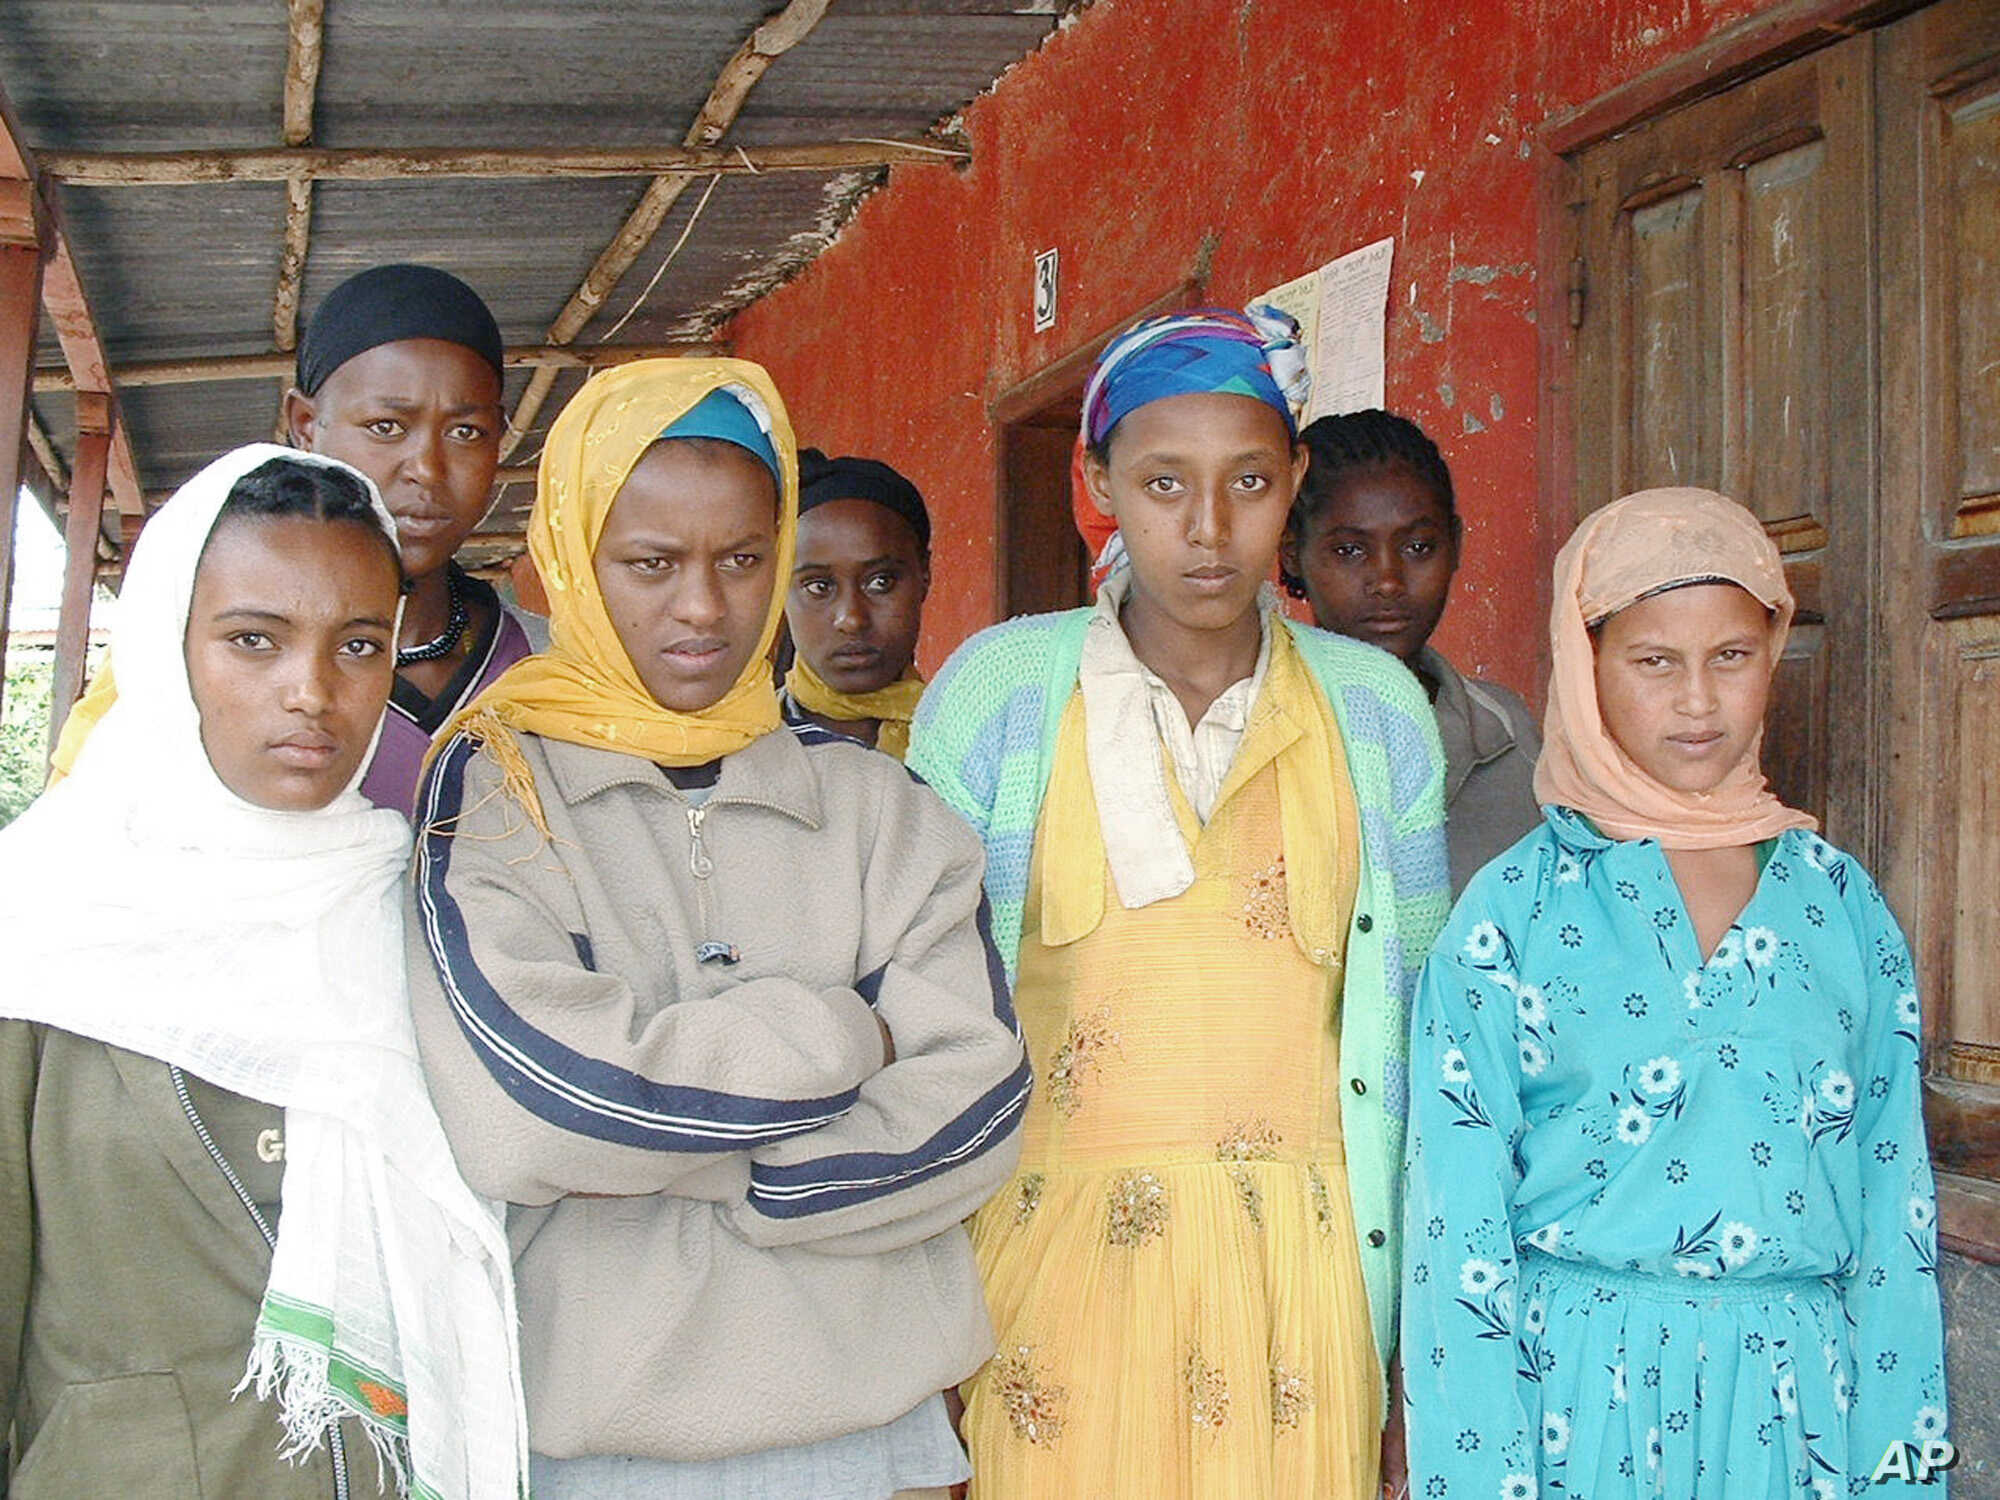 Ethiopian Film Portrays Girls' Abduction for Forced Marriage | Voice